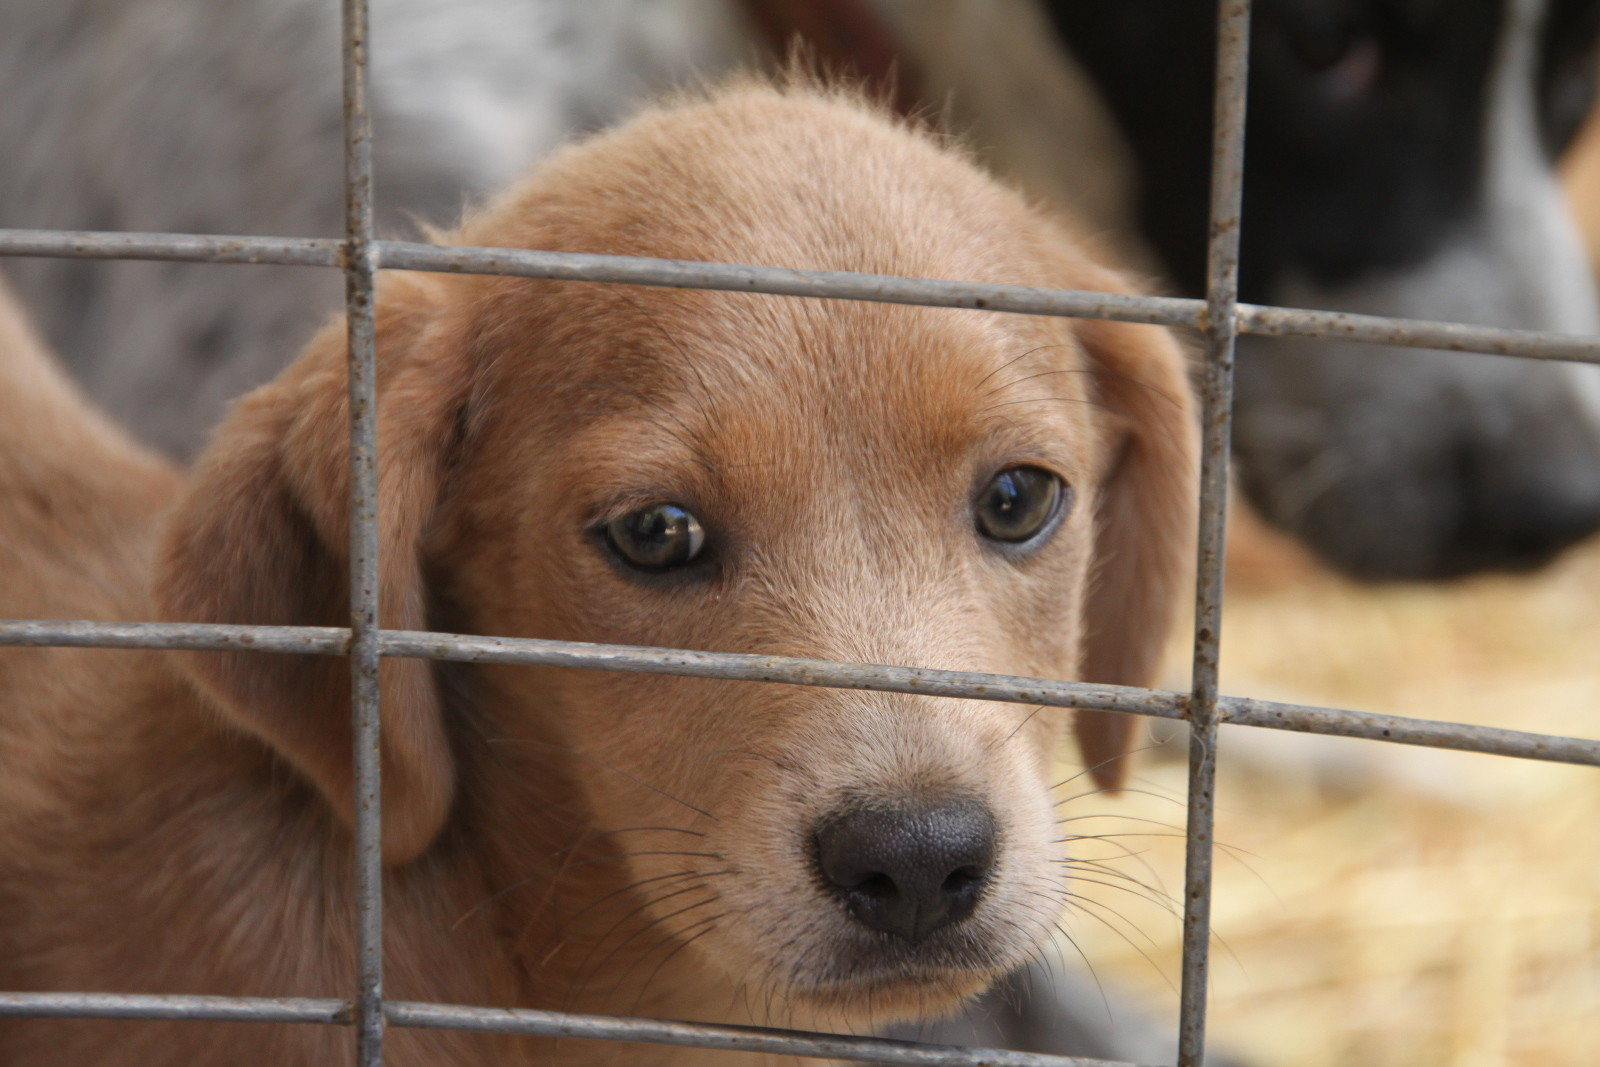 10 Ways to Help End Pet Homelessness